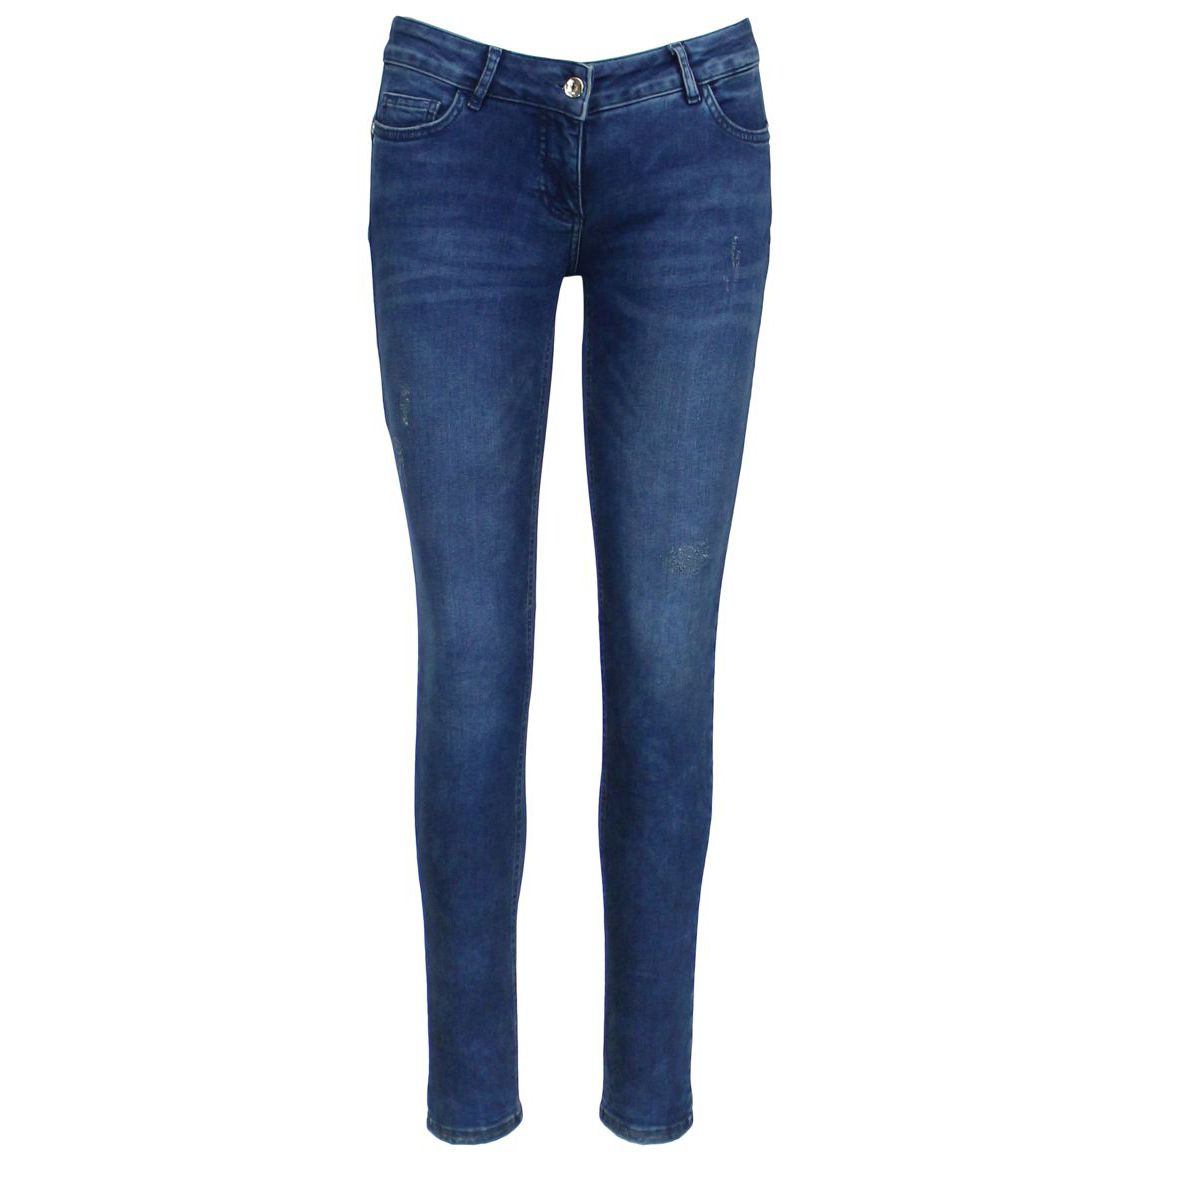 Used effect jeans 5 pockets Dark denim Patrizia Pepe